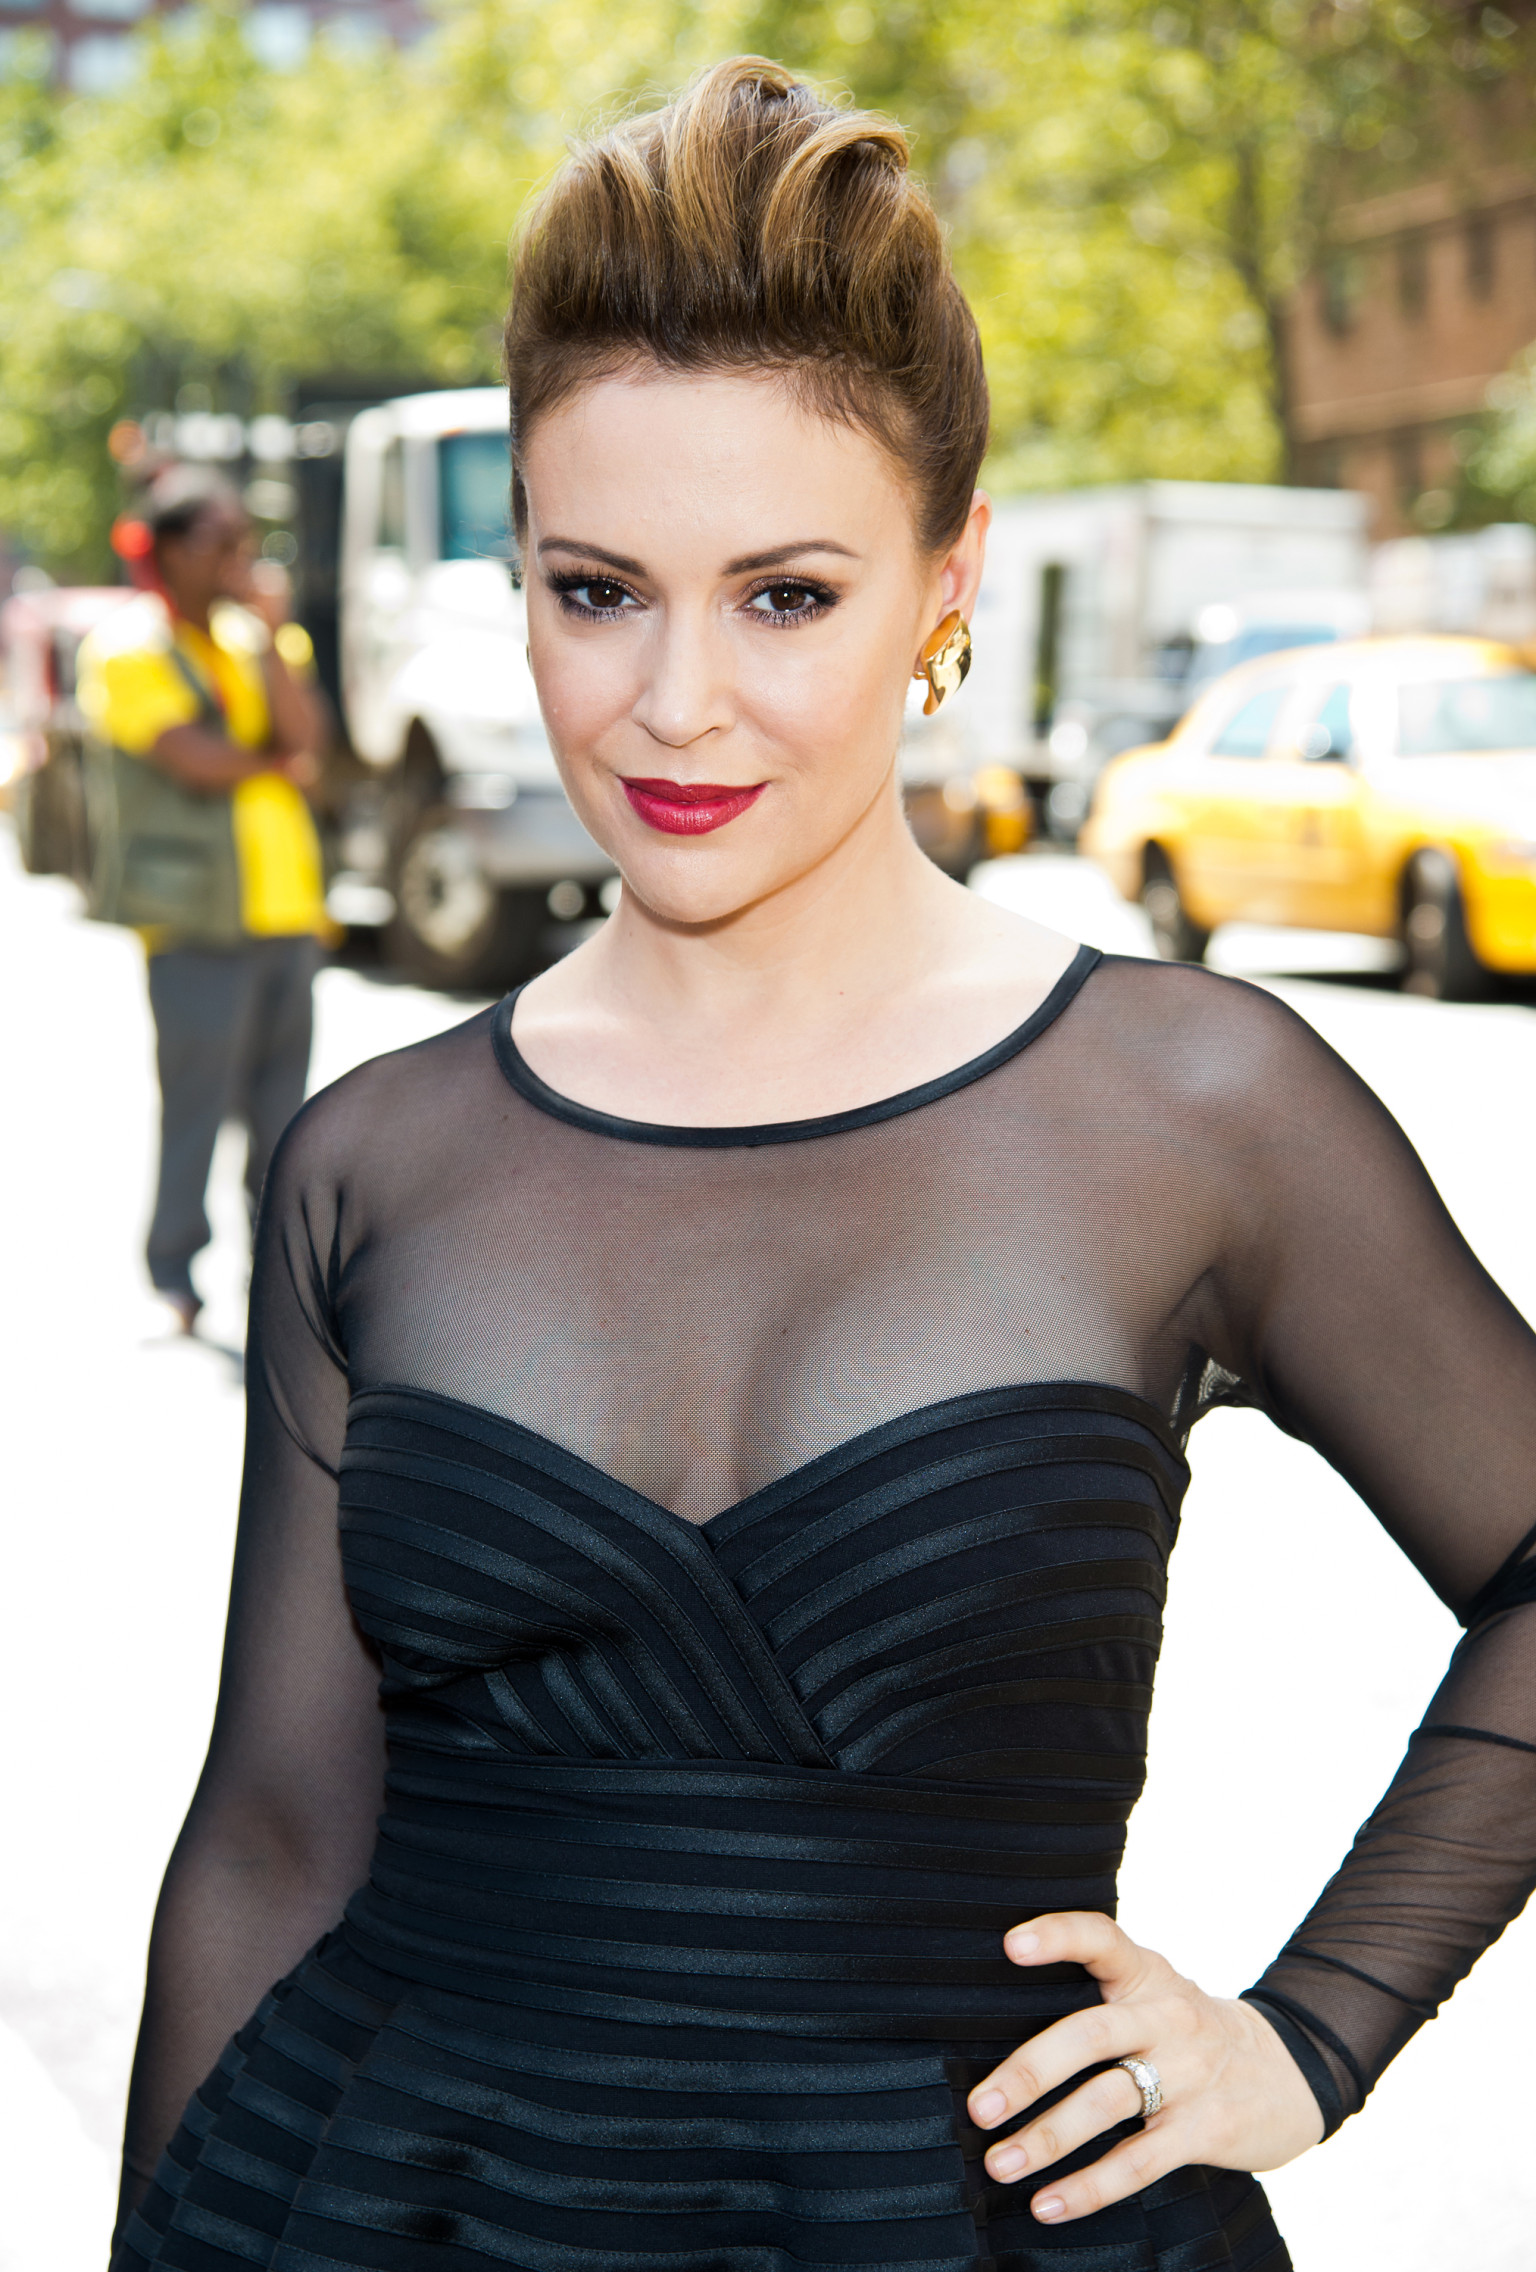 Learn more about Alyssa Milano at TVGuidecom with exclusive news full bio and filmography as well as photos videos and more